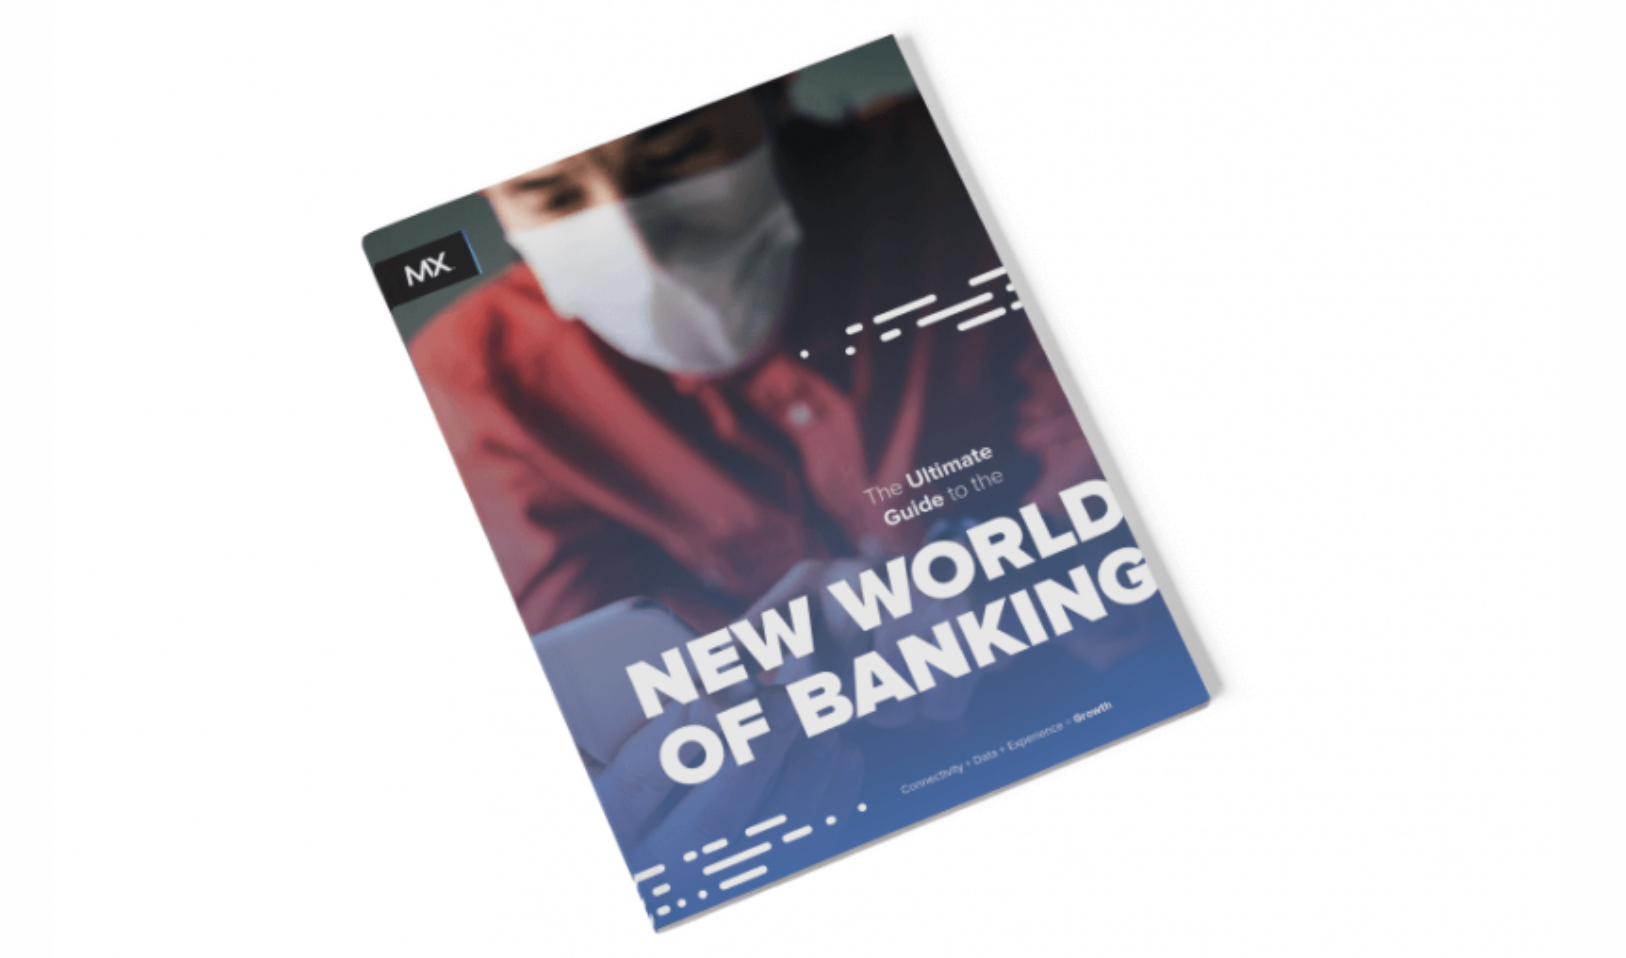 new world of banking